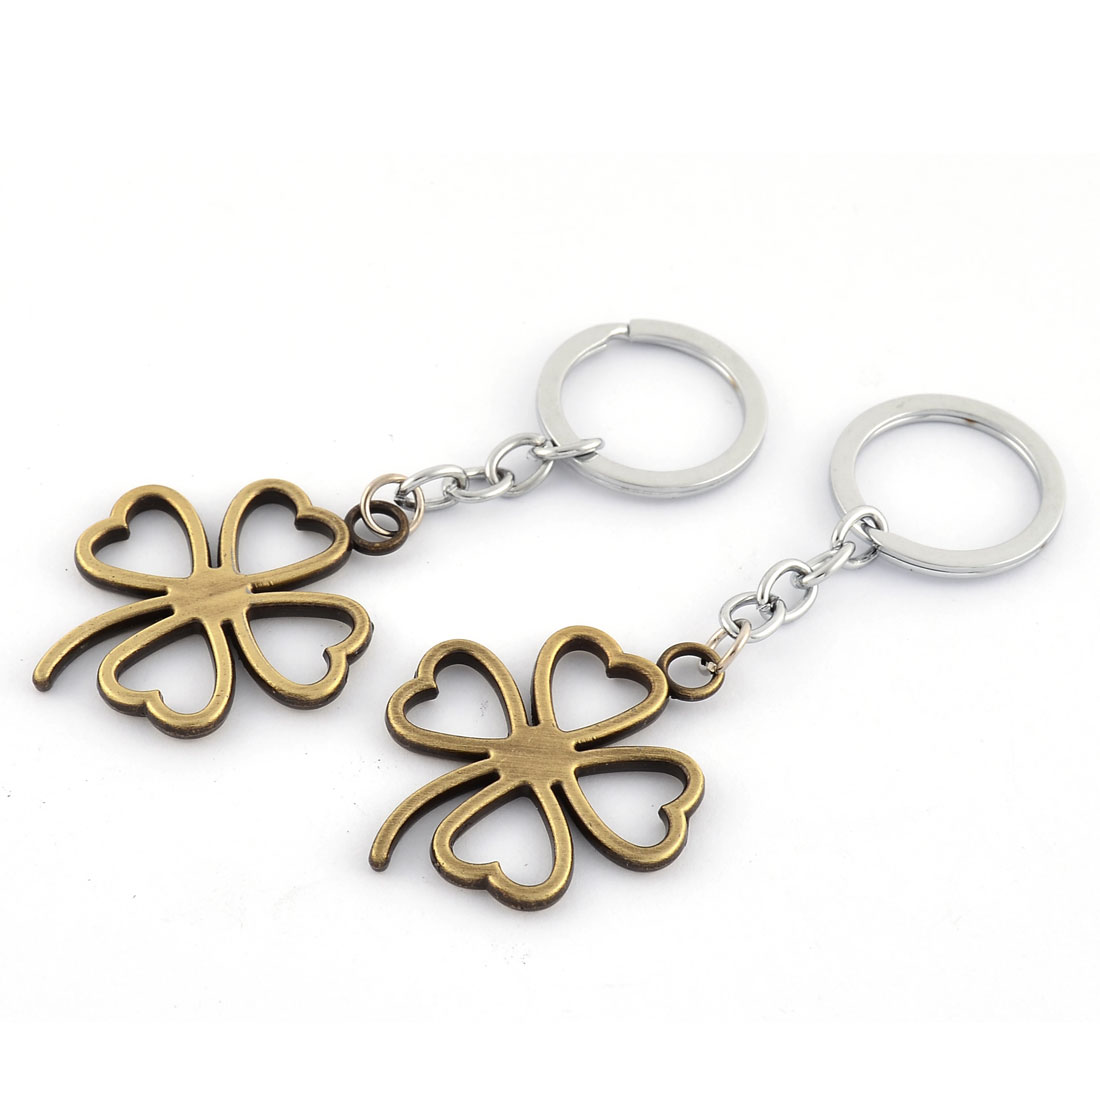 Metal Lucky Grass Shaped Pendant Ornament Key Chain Golden Tone 10.2cm 2 Pcs